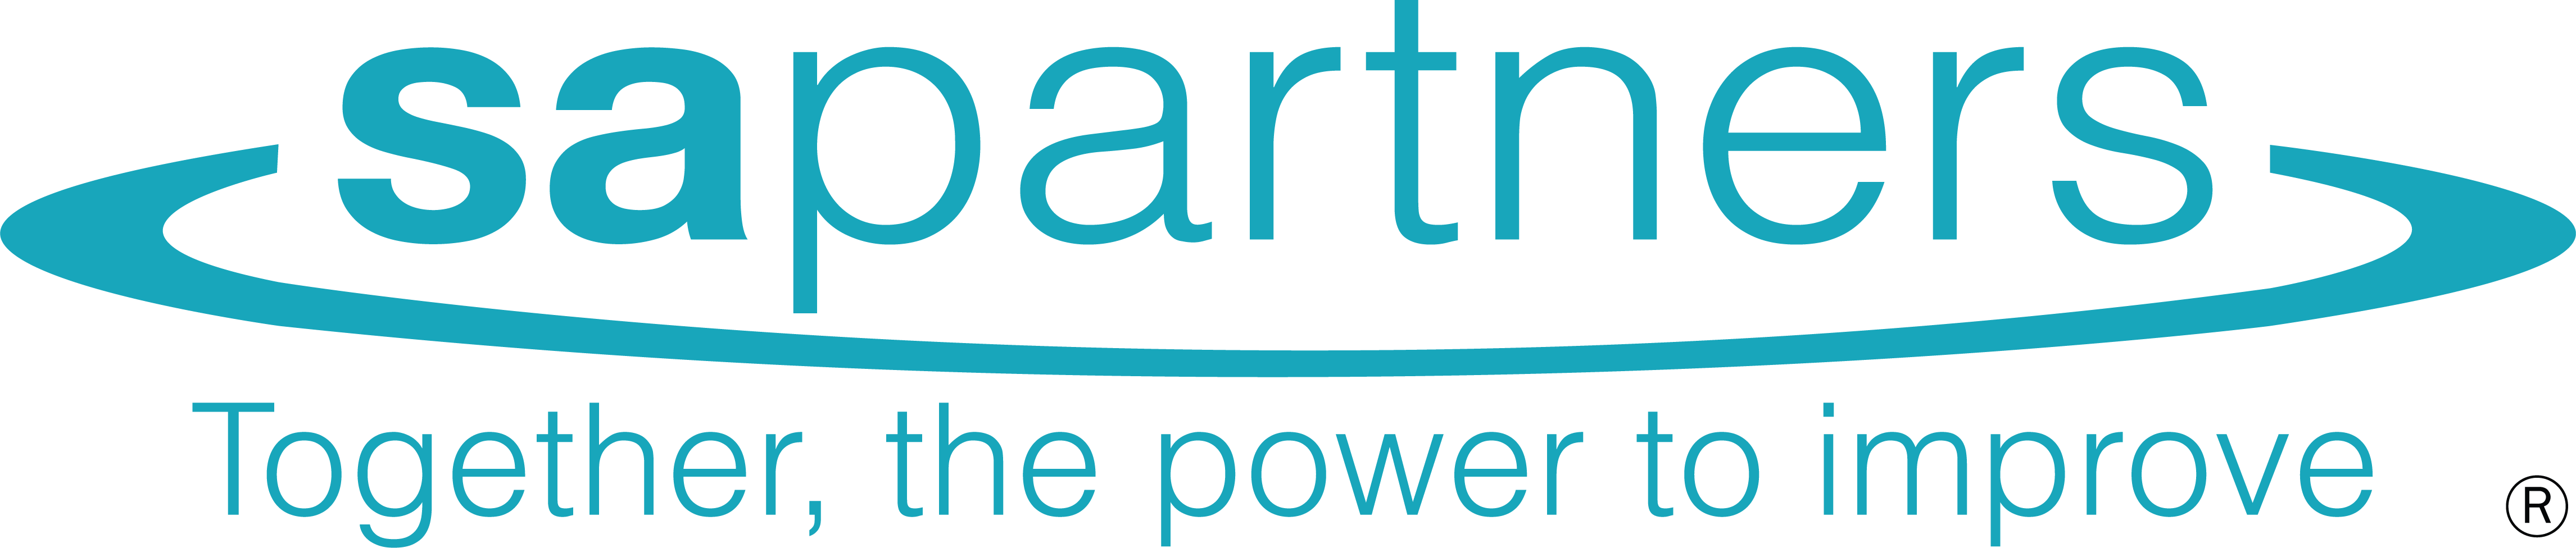 S A Partners logo - new